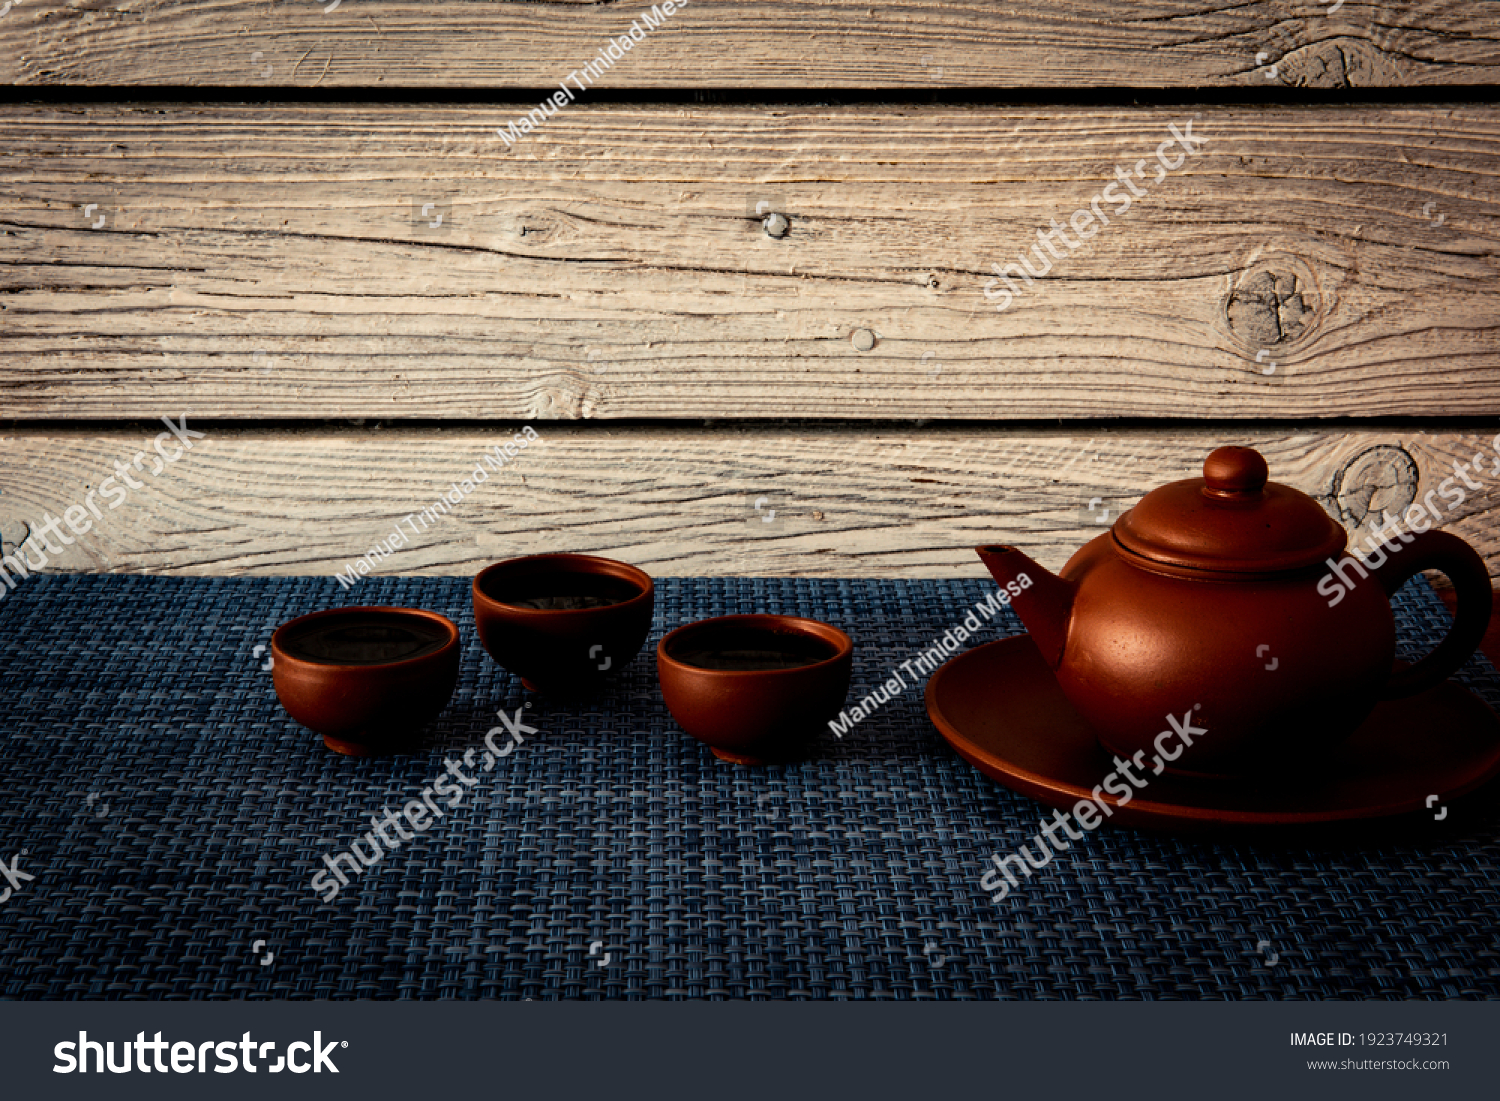 stock-photo-clay-teapot-and-three-tea-bo